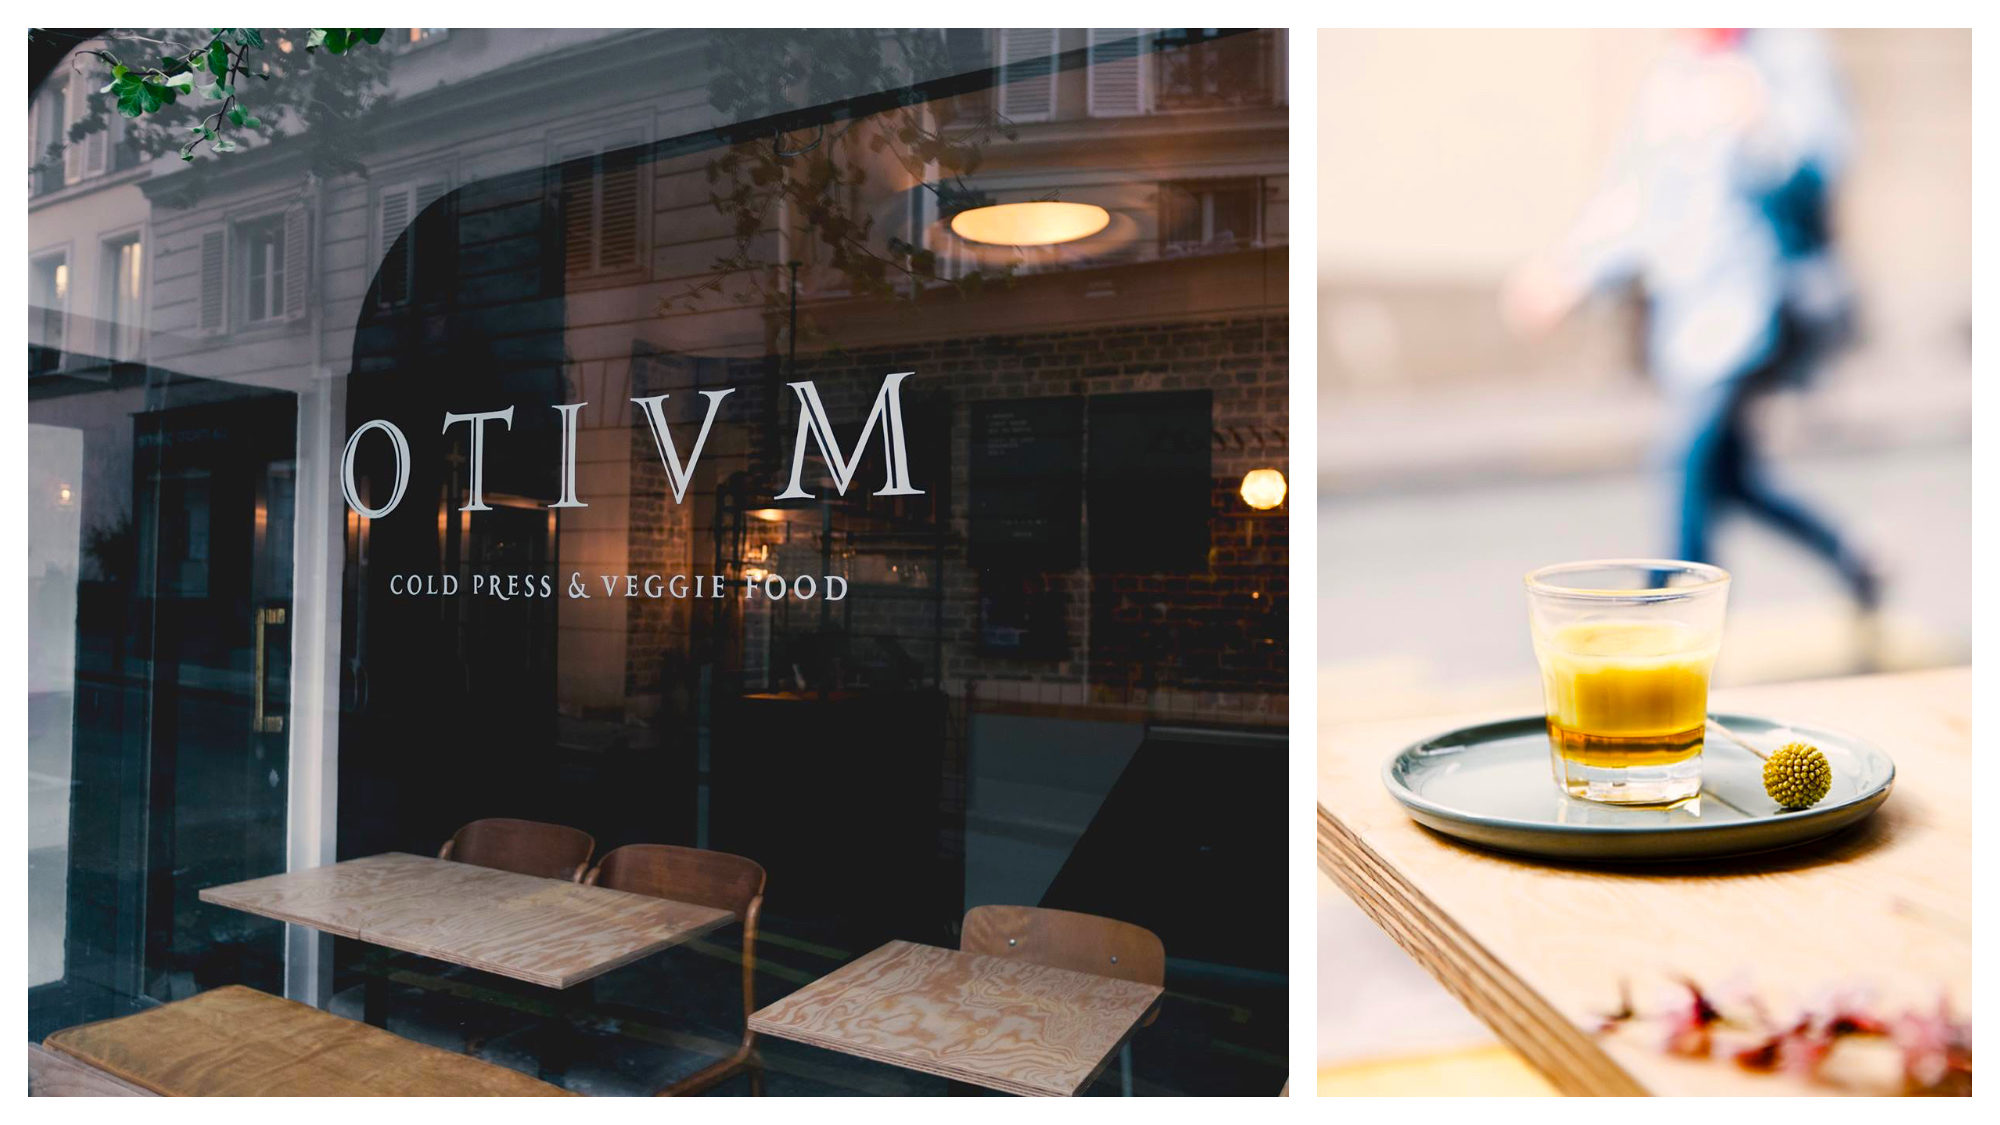 The window at Otium café (left) which specializes in cold-pressed juices (right).